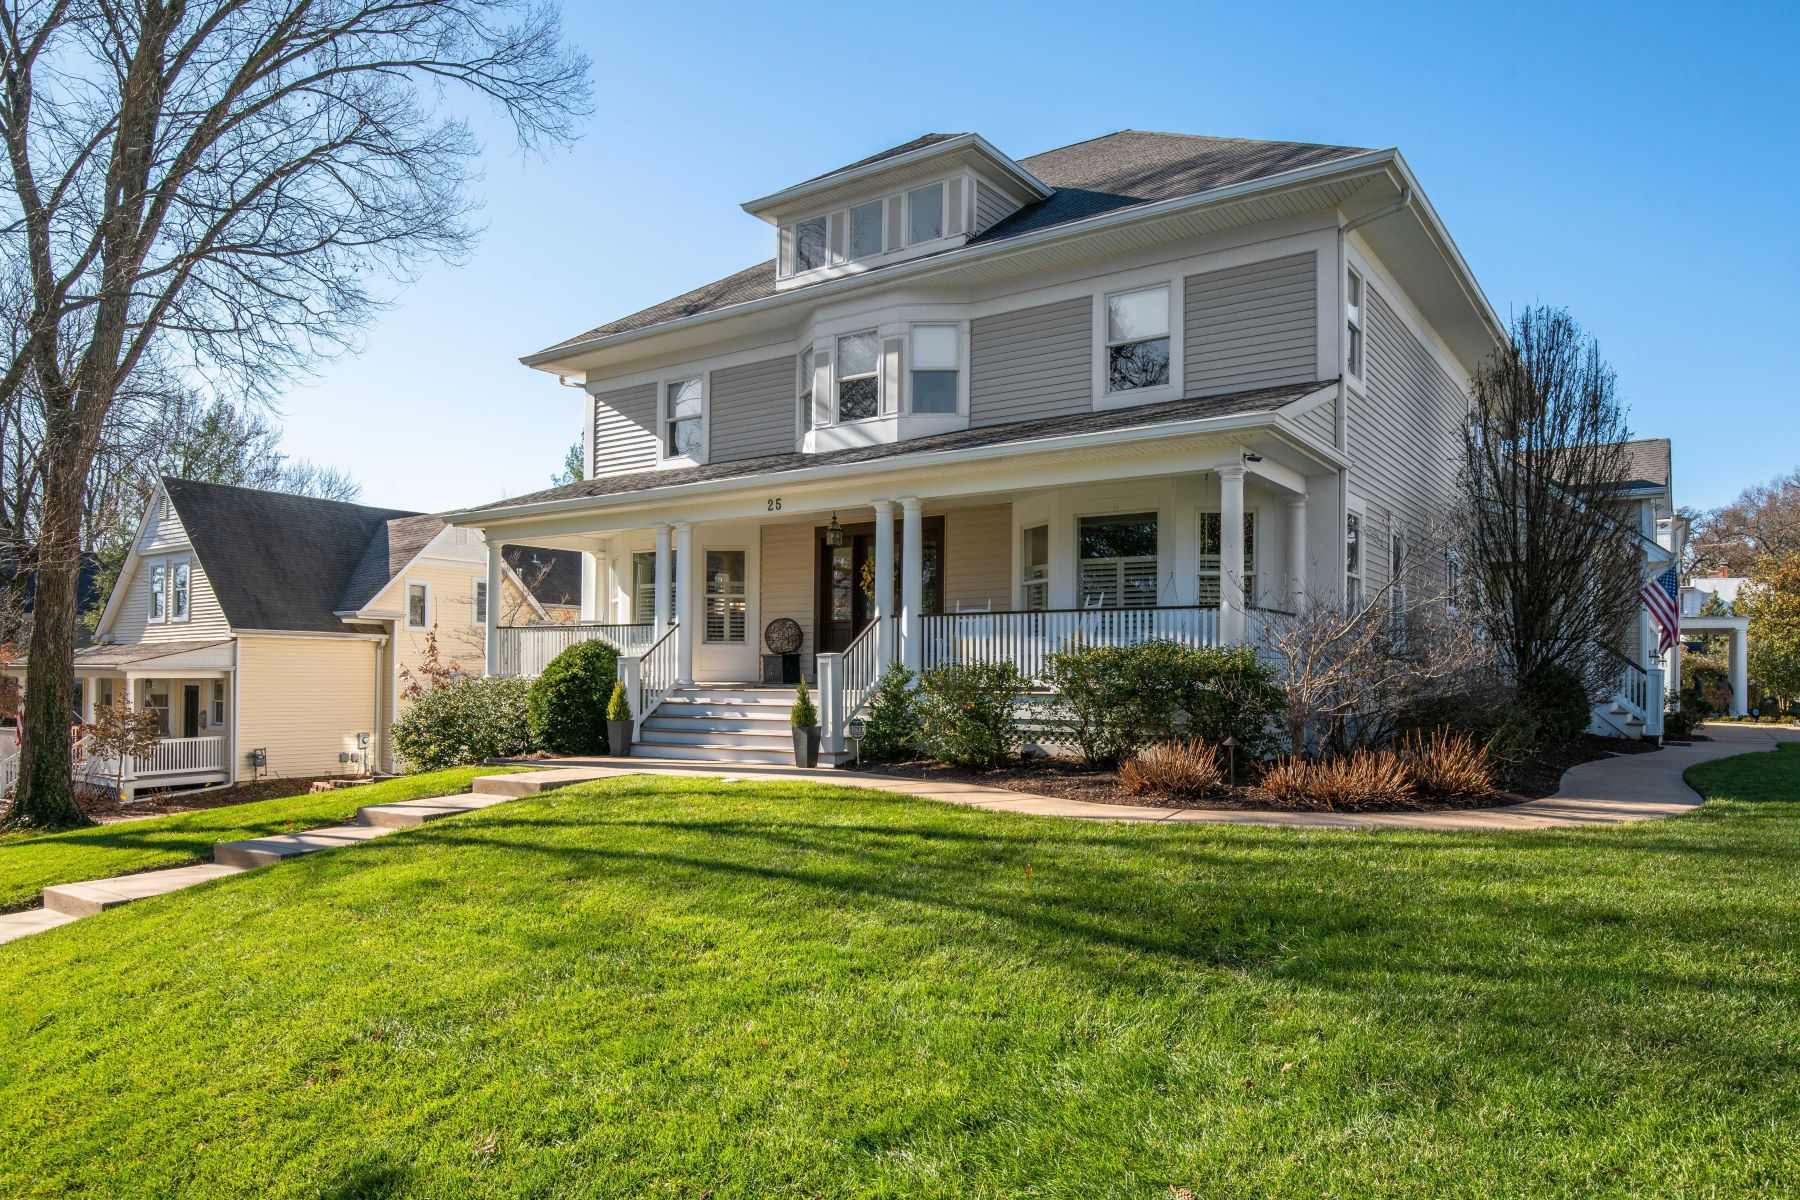 Single Family Homes for Sale at Graceful Colonial Revival in Ideal Location 25 Edwin Avenue Glendale, Missouri 63122 United States